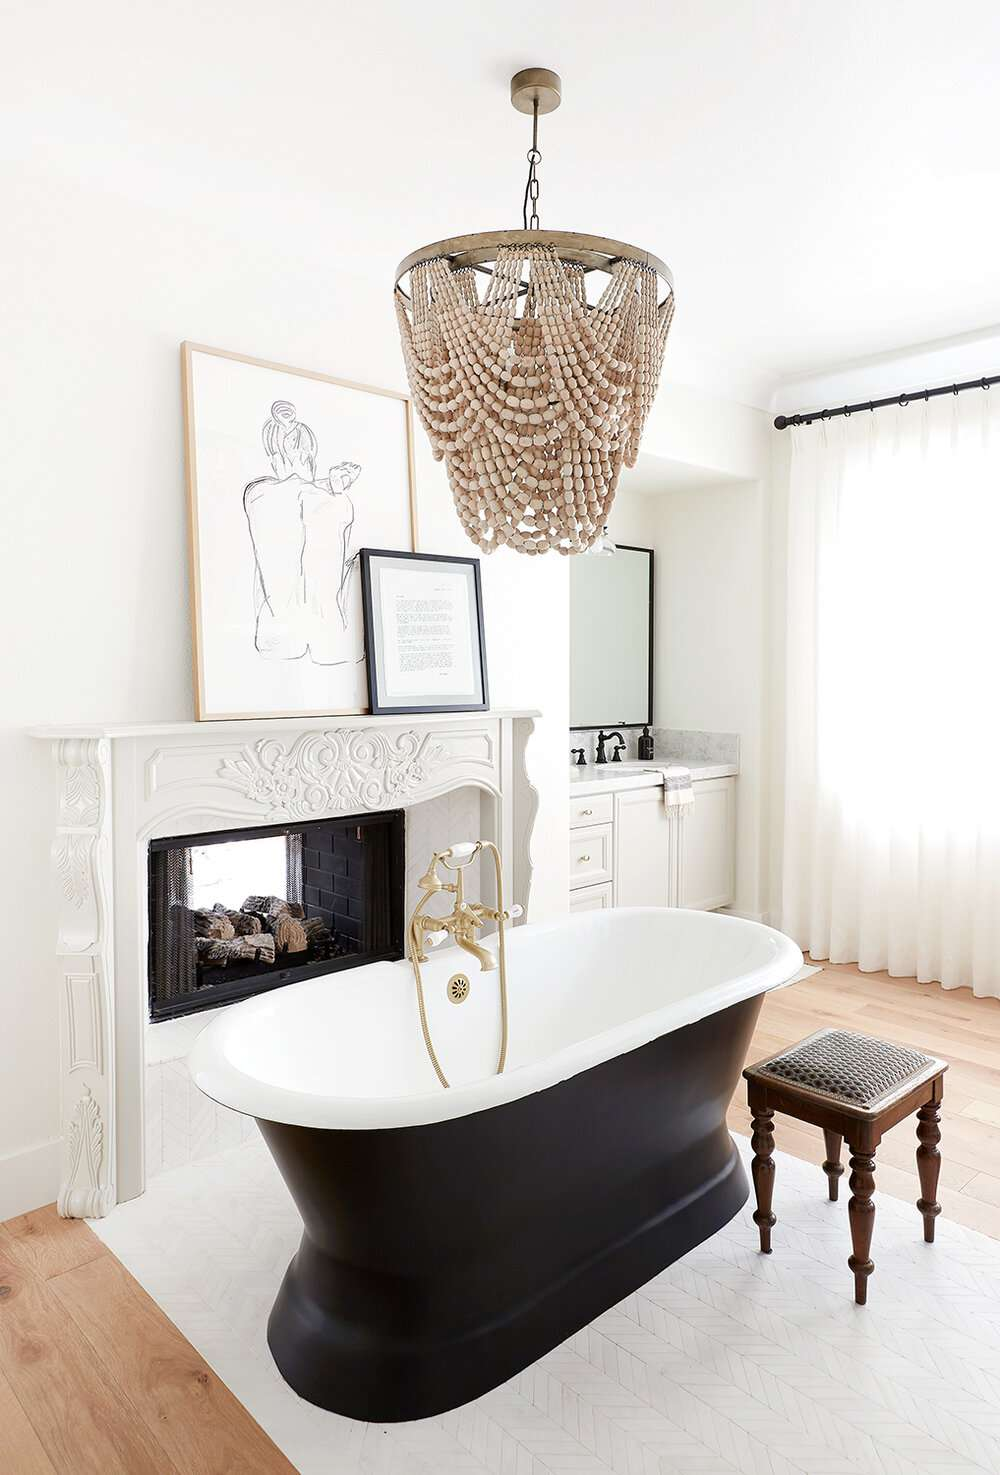 A primary bathroom with a black freestanding tub and a beaded chandelier